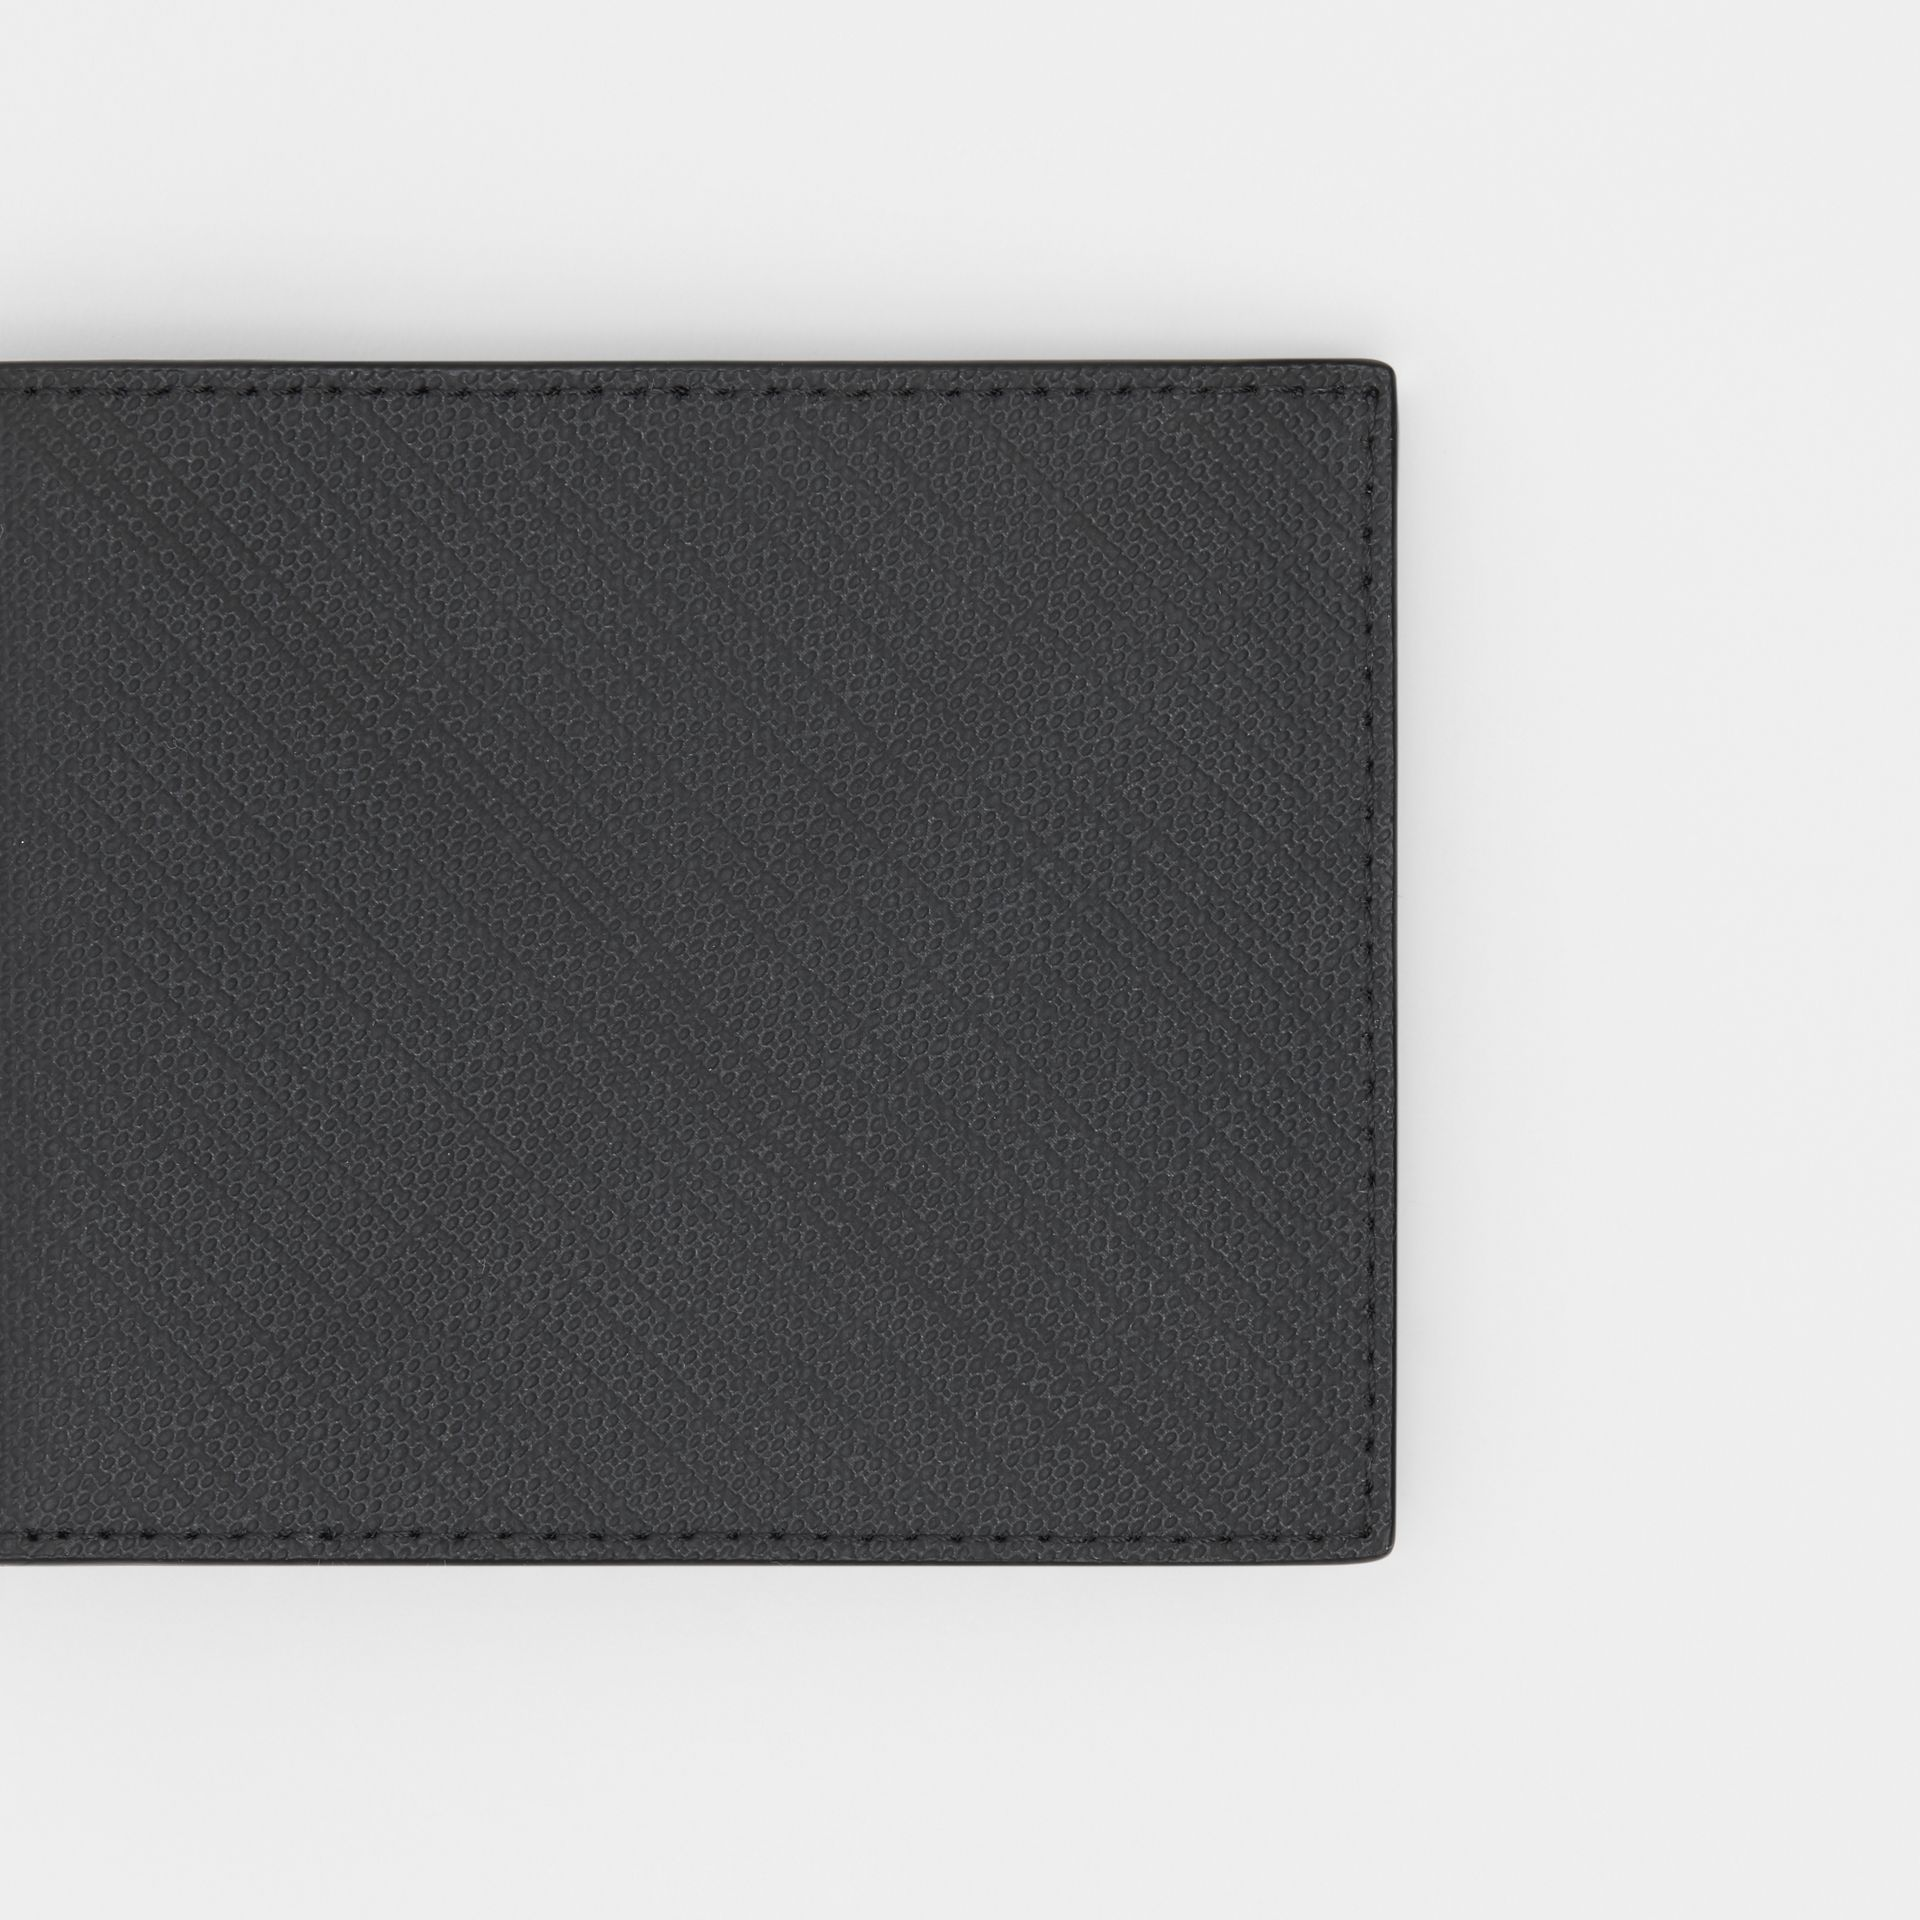 London Check and Leather Bifold Wallet in Dark Charcoal - Men | Burberry - gallery image 1